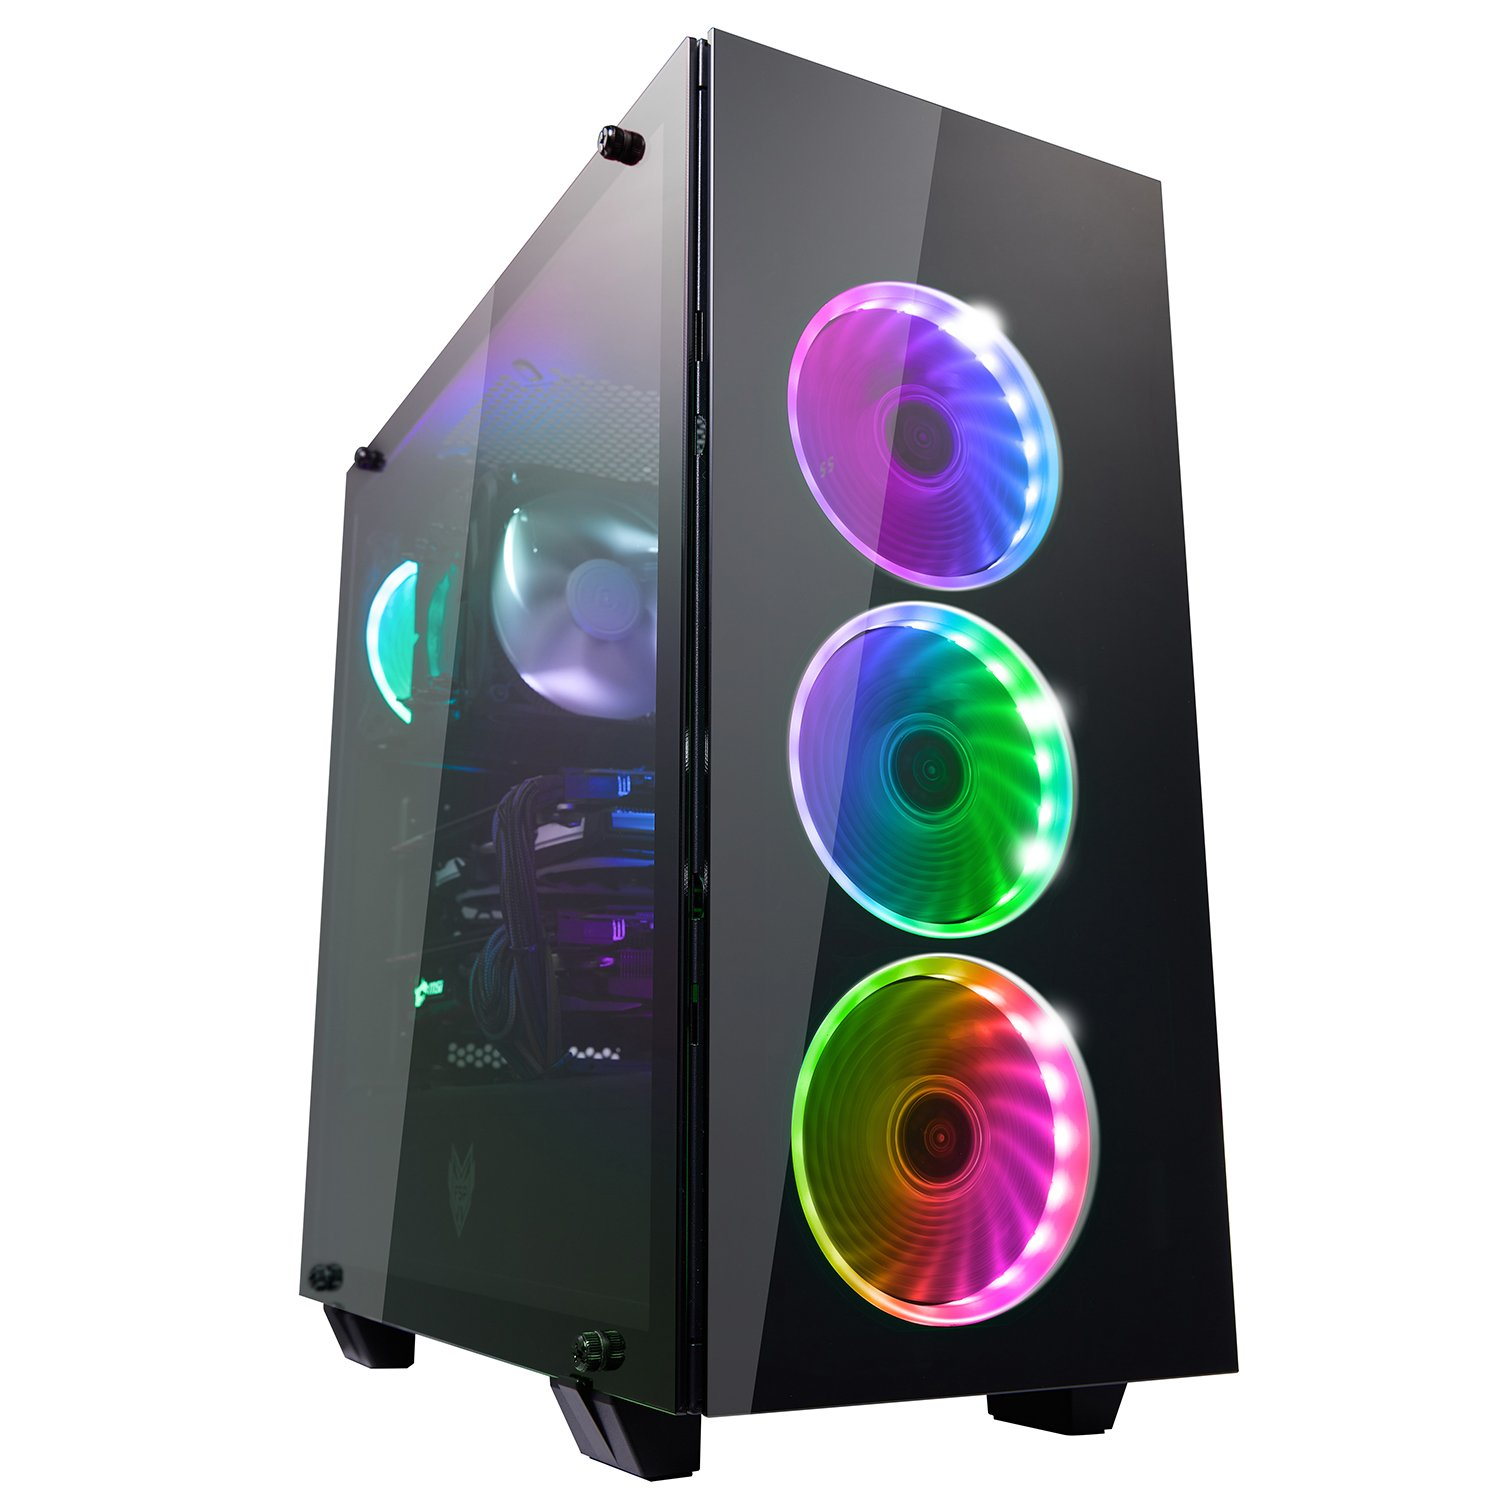 FSP ATX Mid Tower PC Computer Gaming Case with 3 Translucent Tempered Glass Panels and 5 RGB Lighting Modes (CMT510) FSP Group U.S.A. Corporation